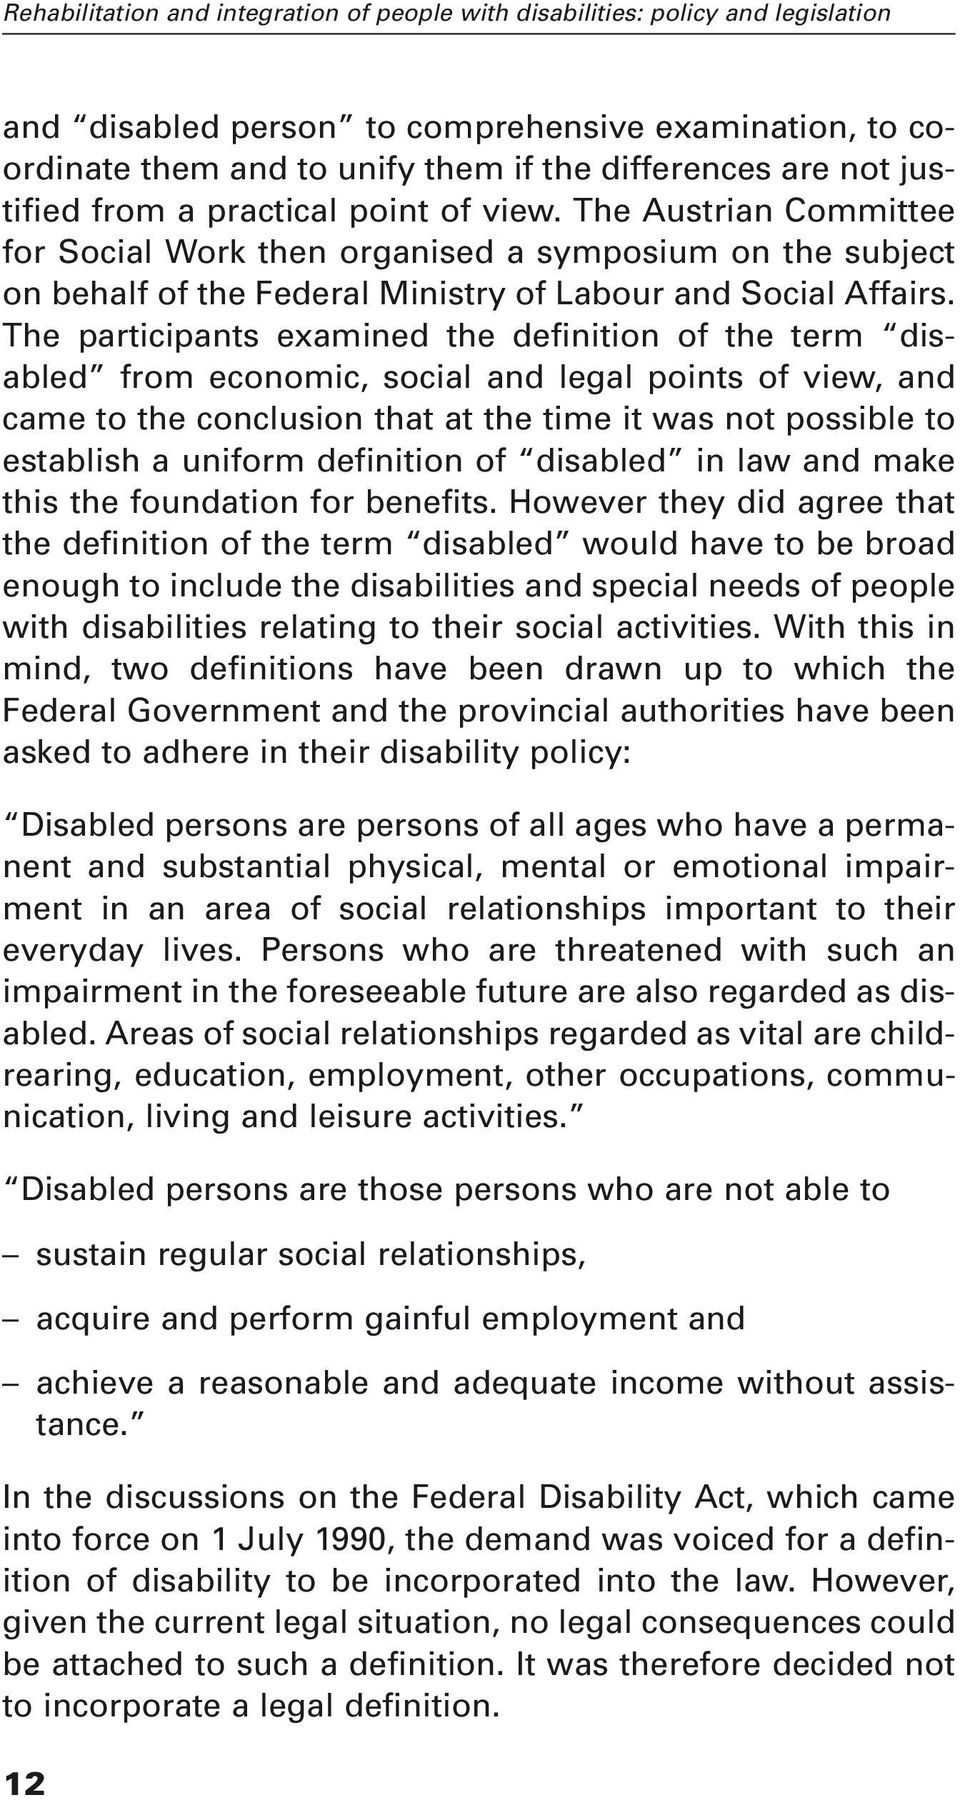 The participants examined the definition of the term disabled from economic, social and legal points of view, and came to the conclusion that at the time it was not possible to establish a uniform